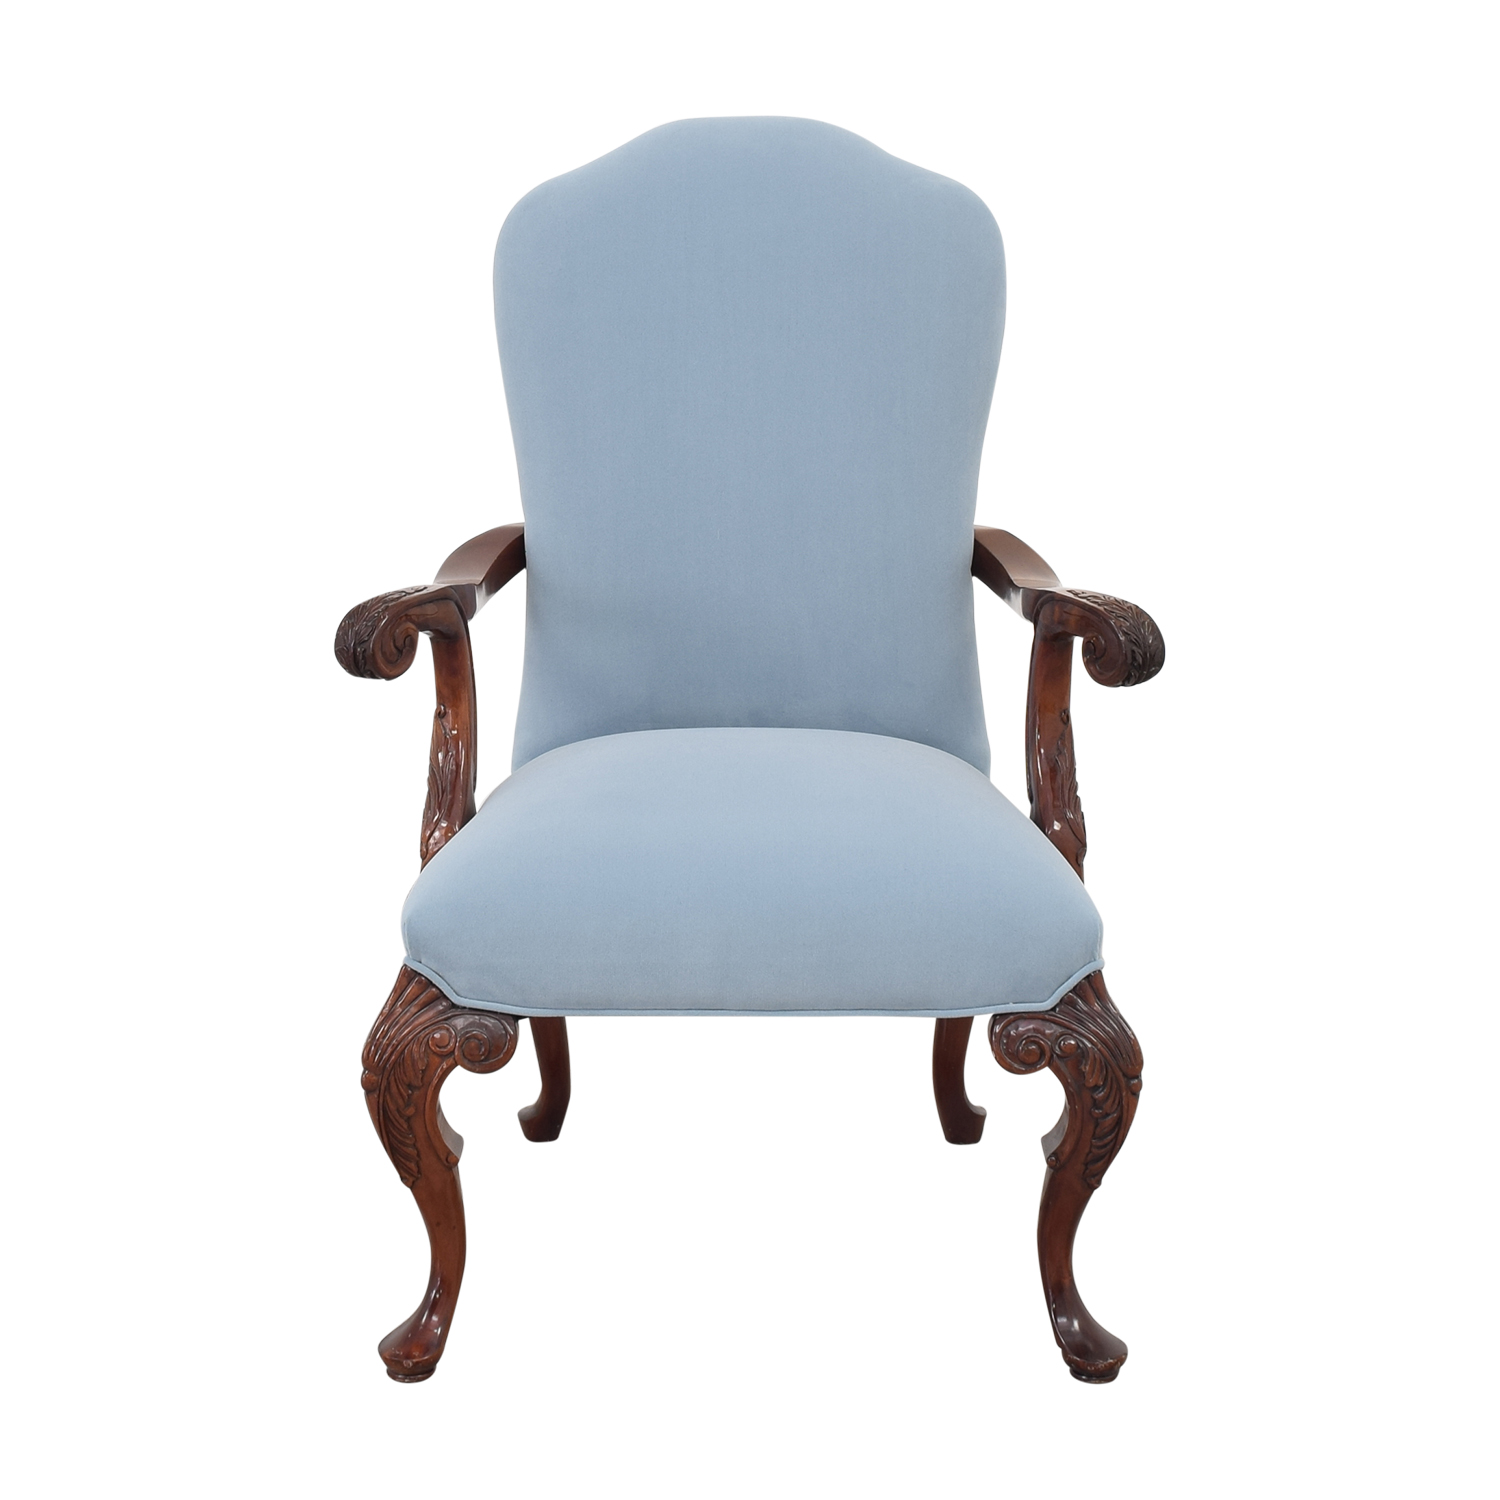 Louis XVI Style Accent Chair second hand